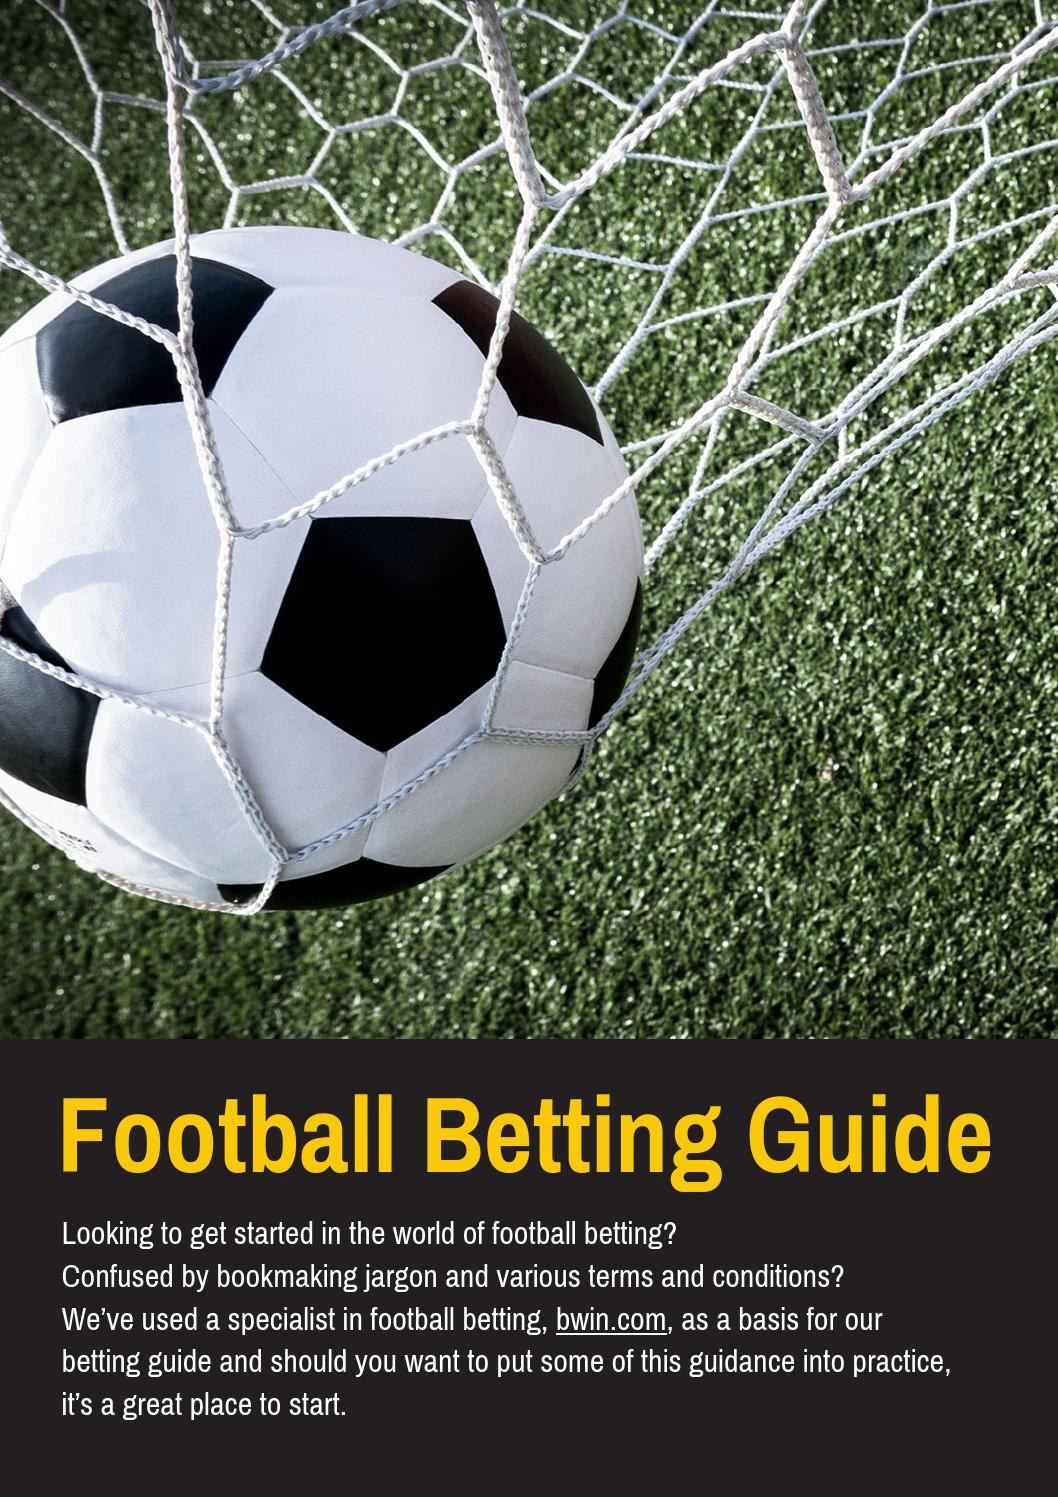 bwin soccer betting guide